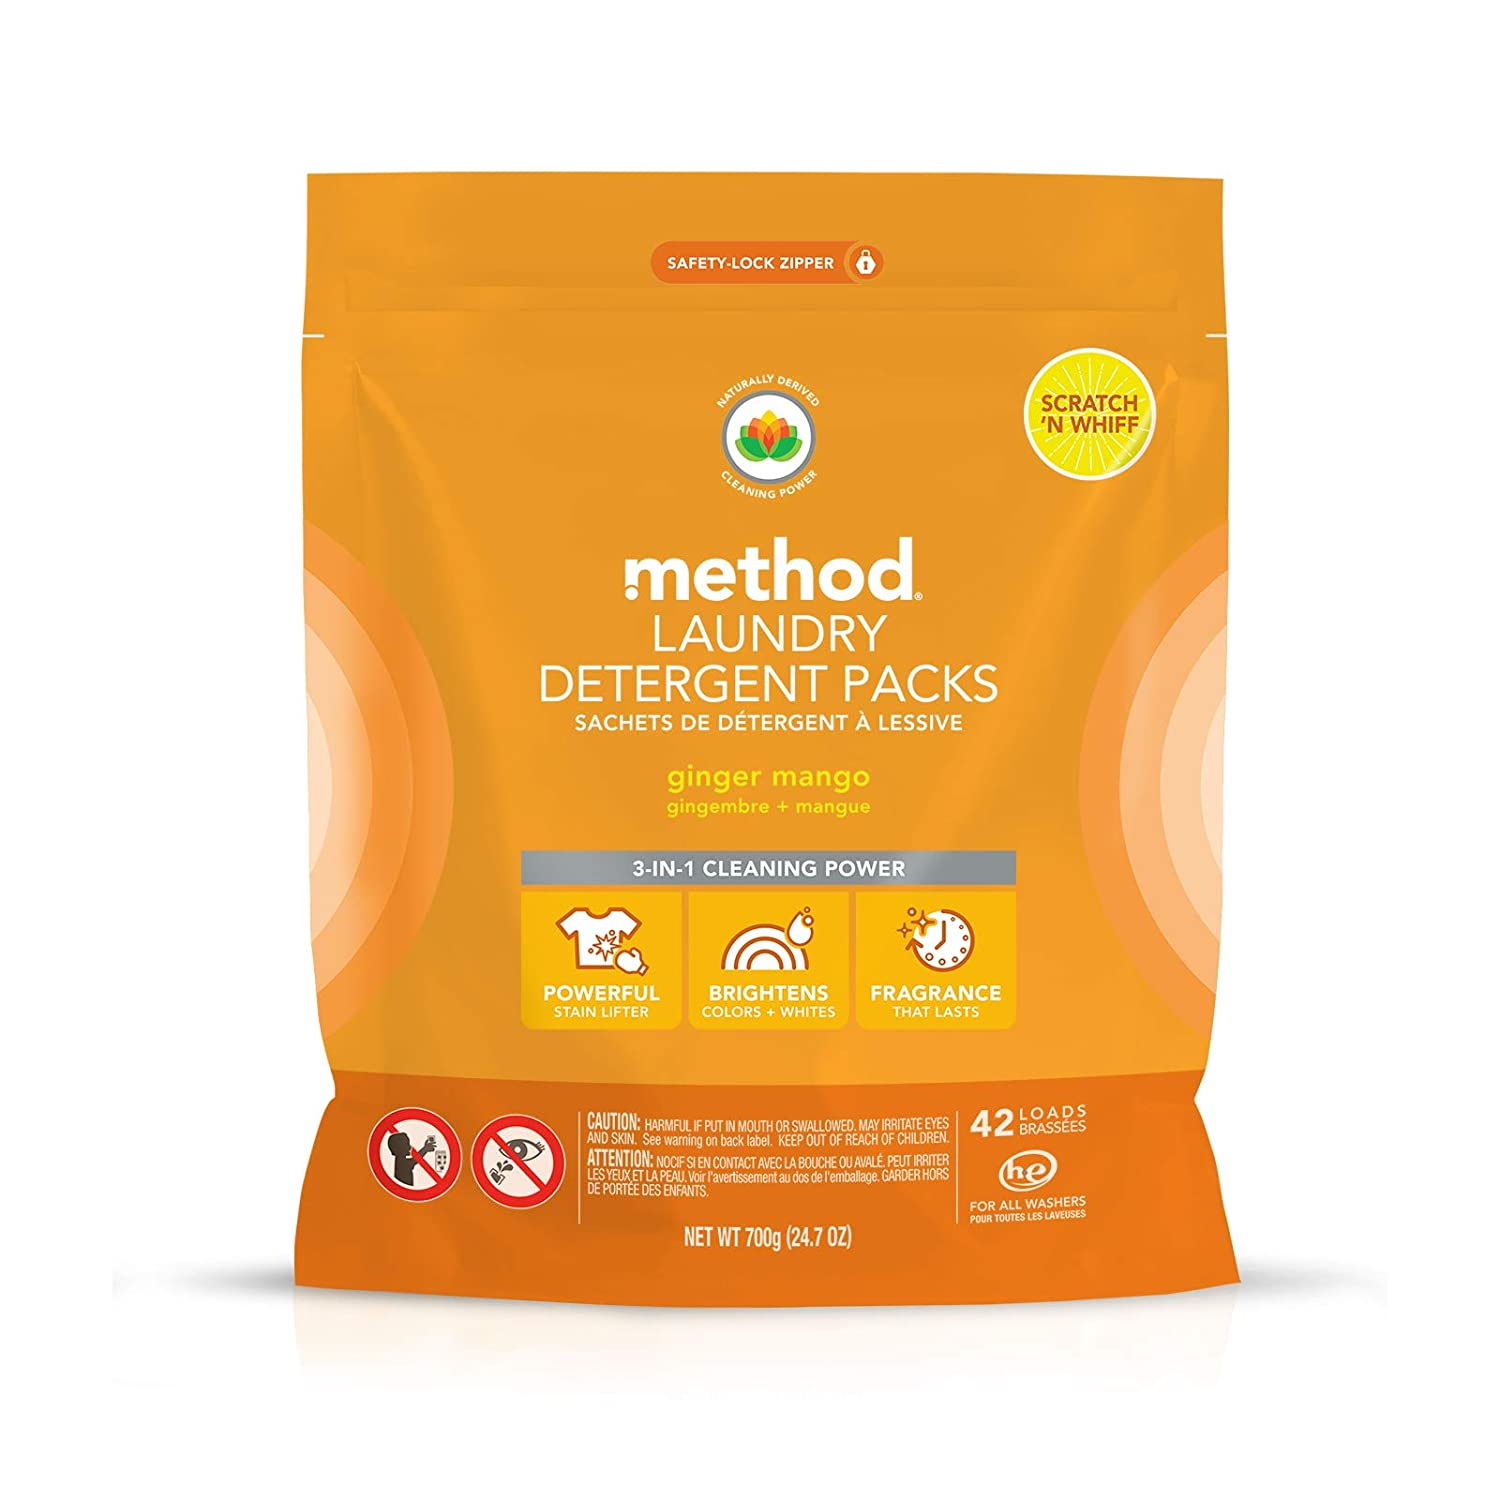 Method Laundry Detergent Packs, Ginger Mango, 42 Count